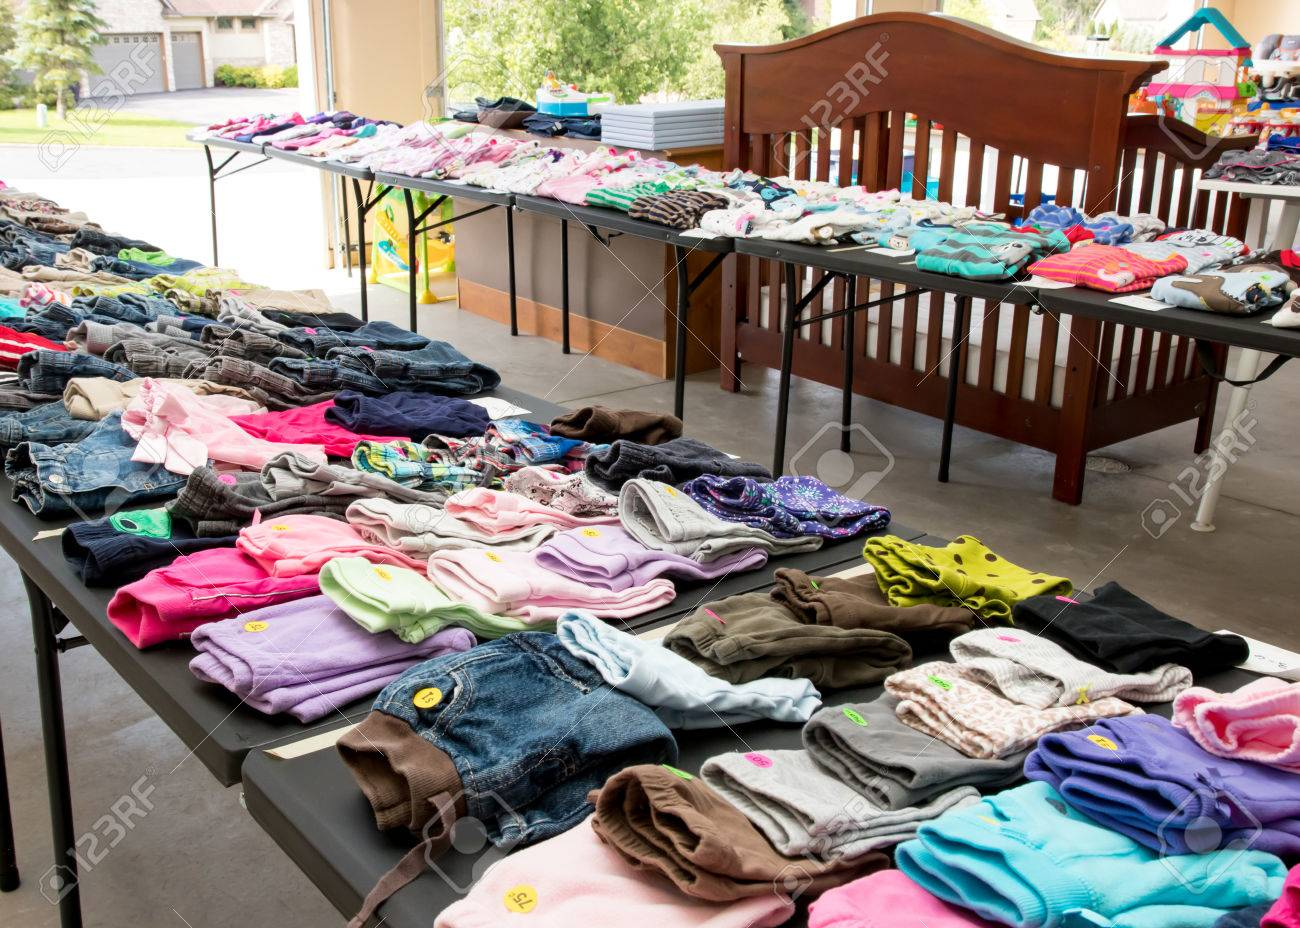 Tables of clothing and baby goods at suburban garage sale - 85058108